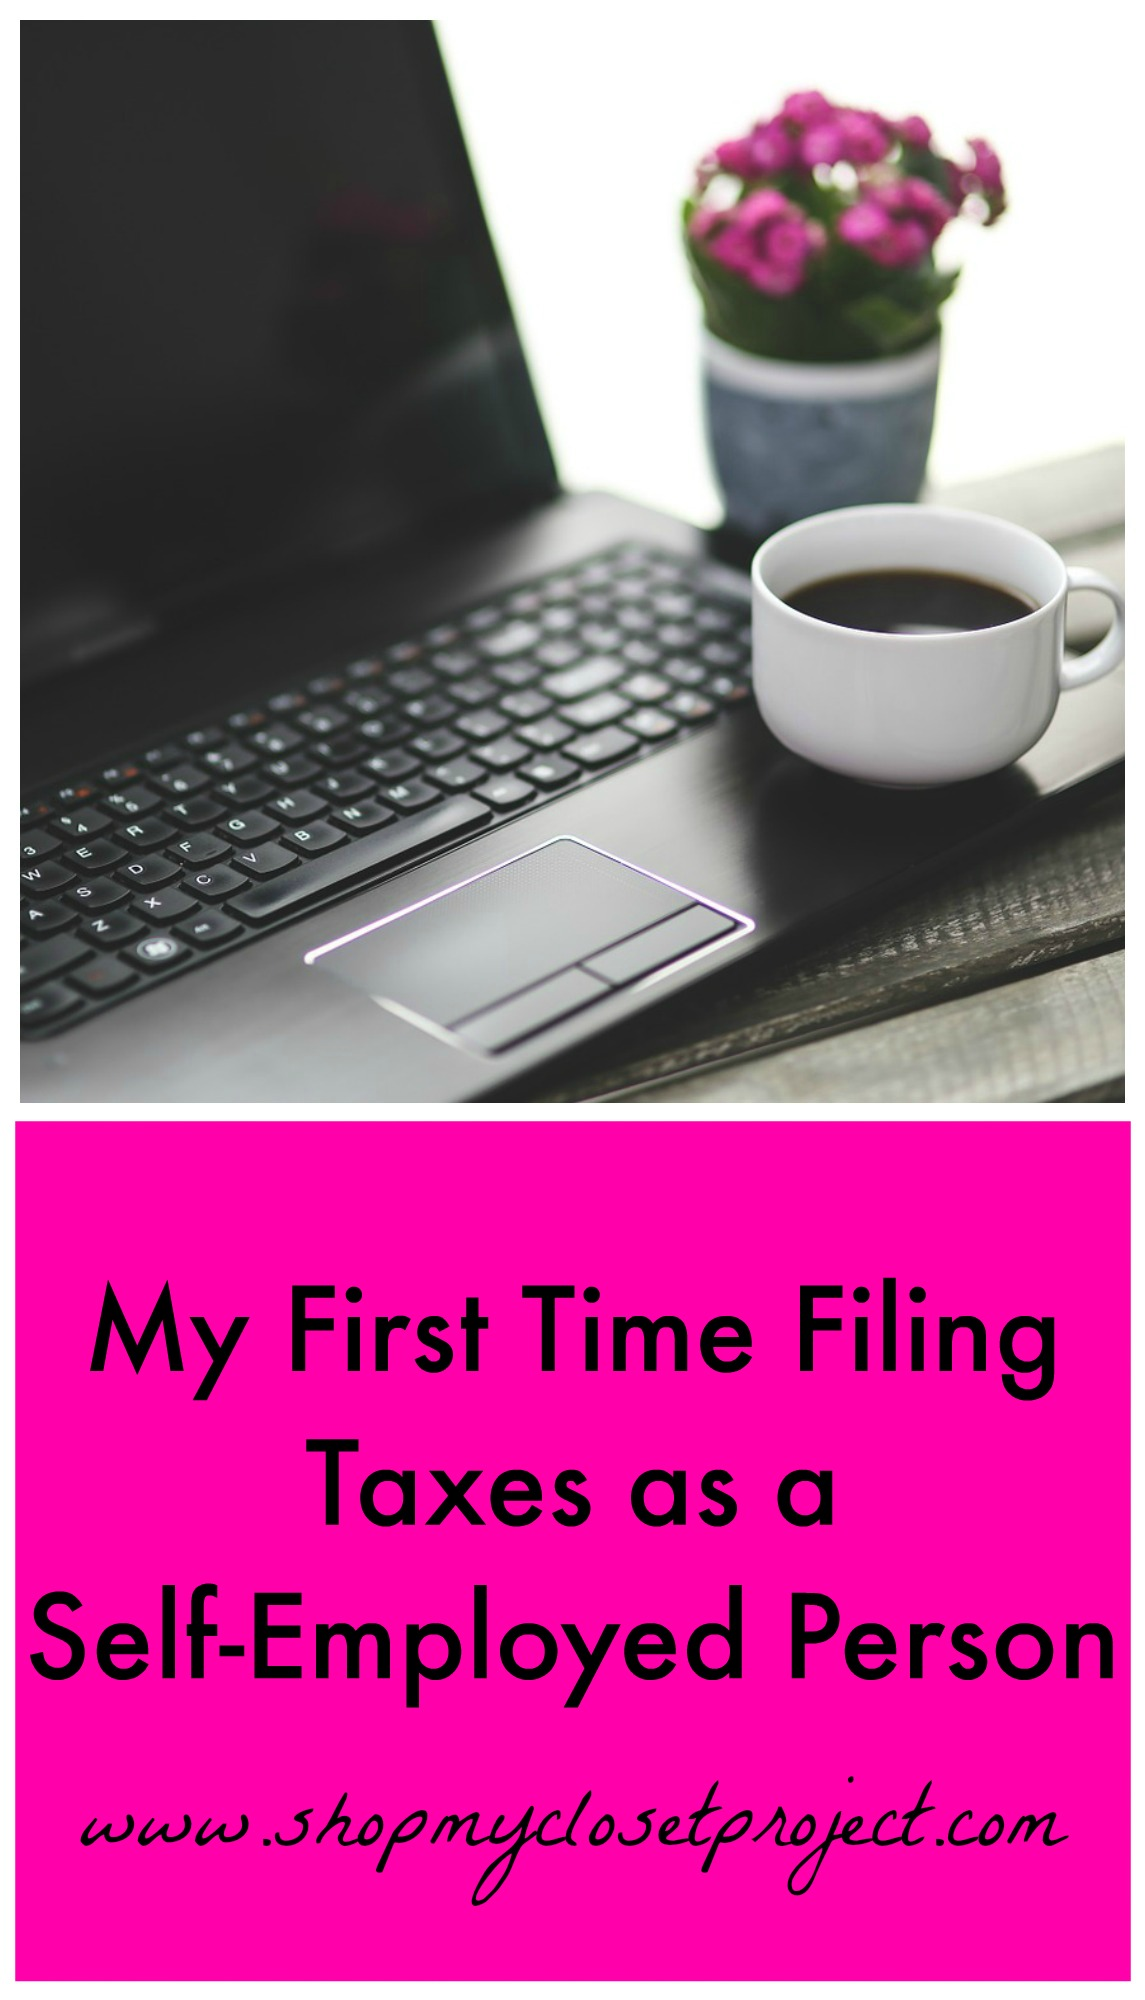 My First Time Filing Taxes As A Self-Employed Person